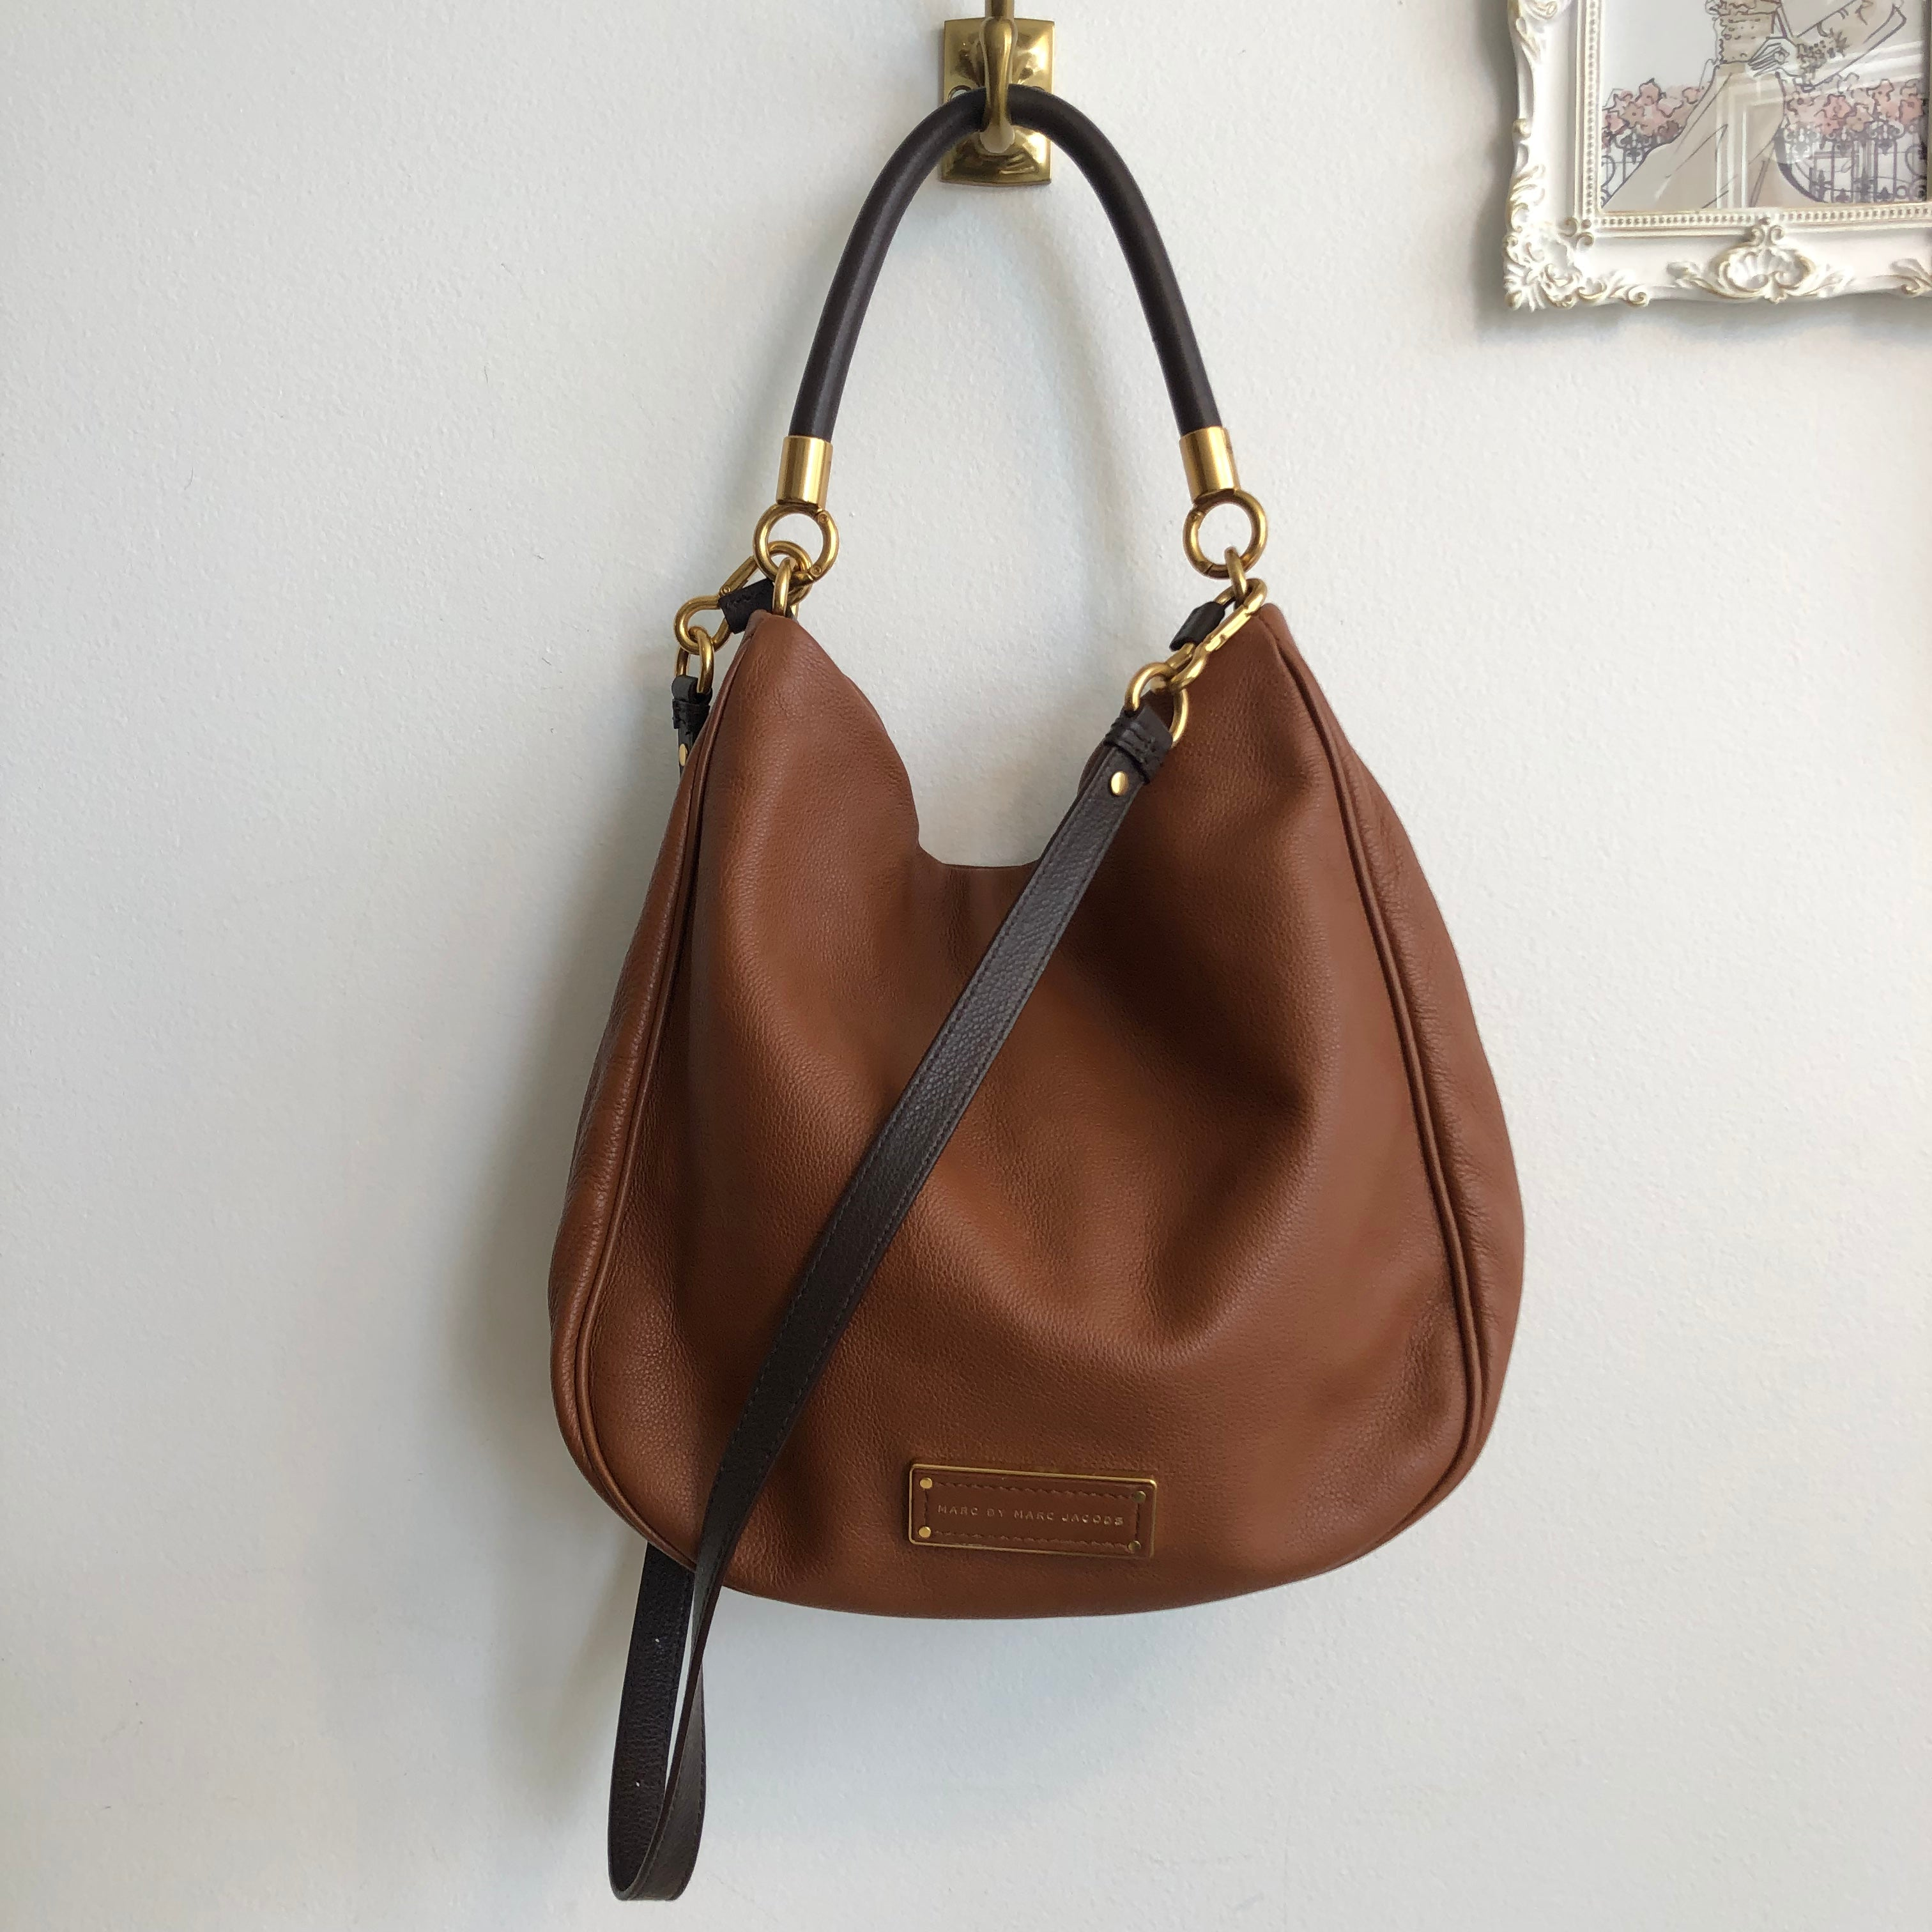 Authentic MARC BY MARC JACOBS Handbag